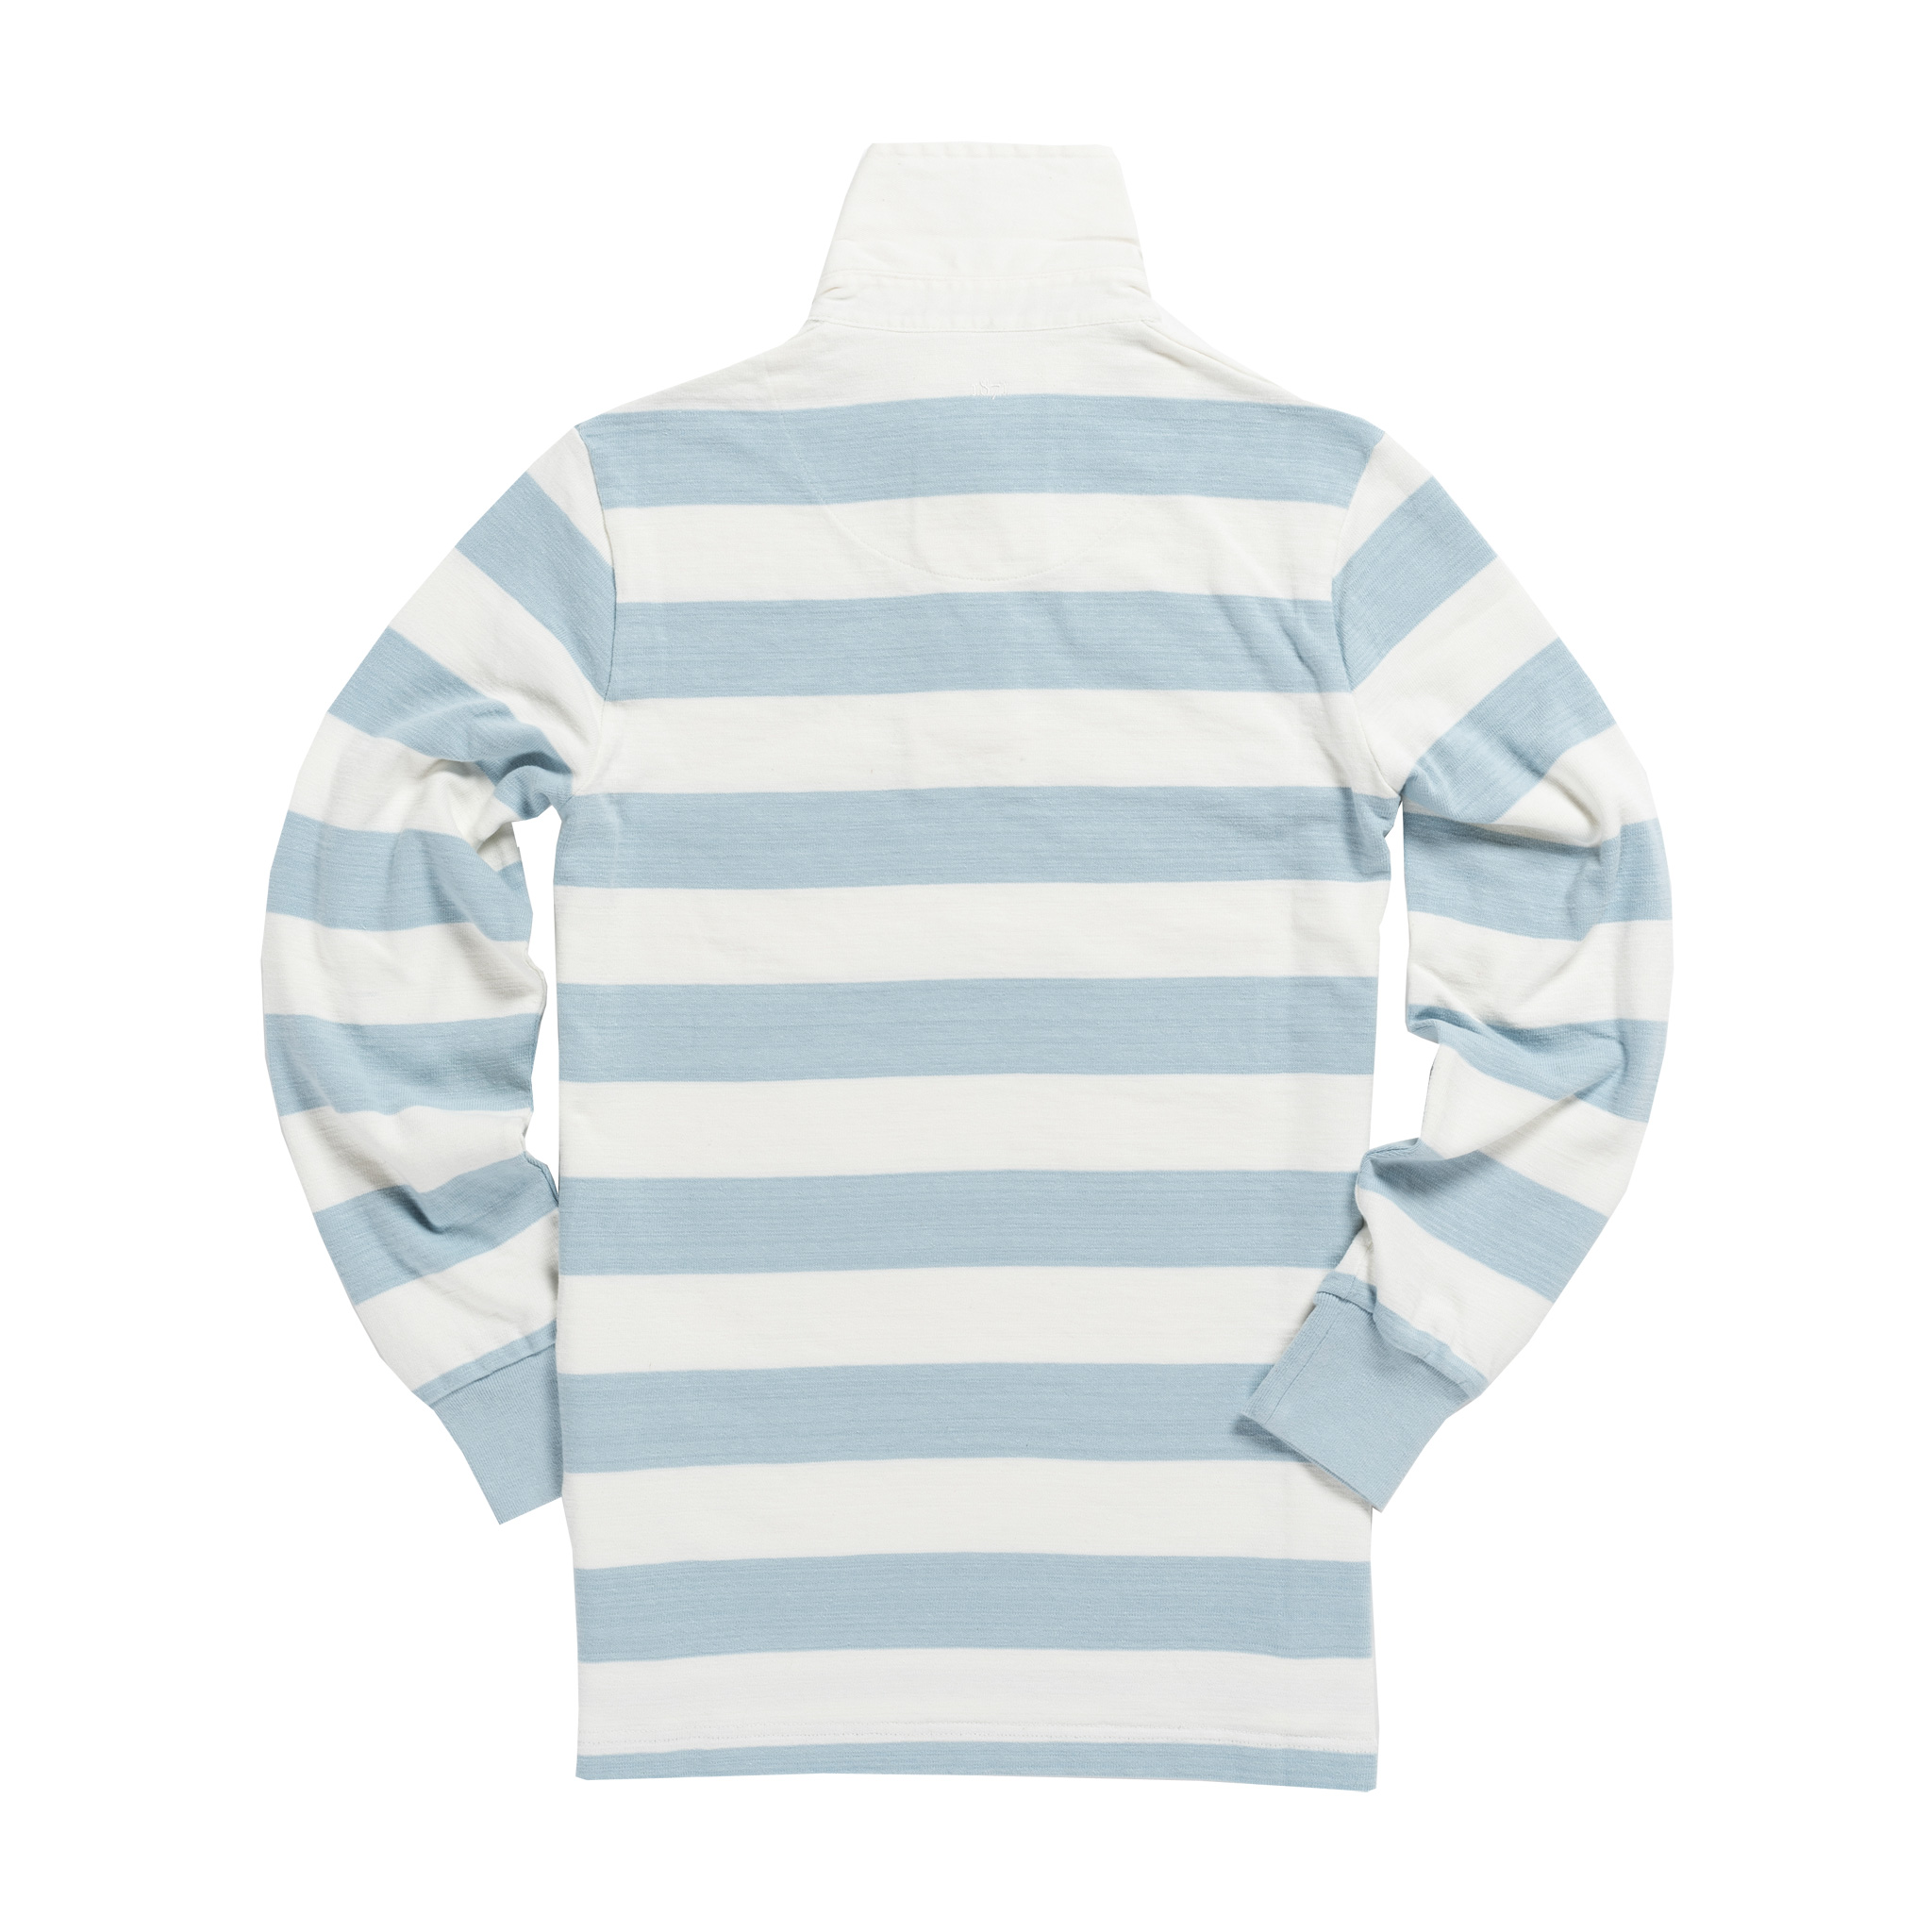 Women's Cambridge 1872 Vintage Rugby Shirt